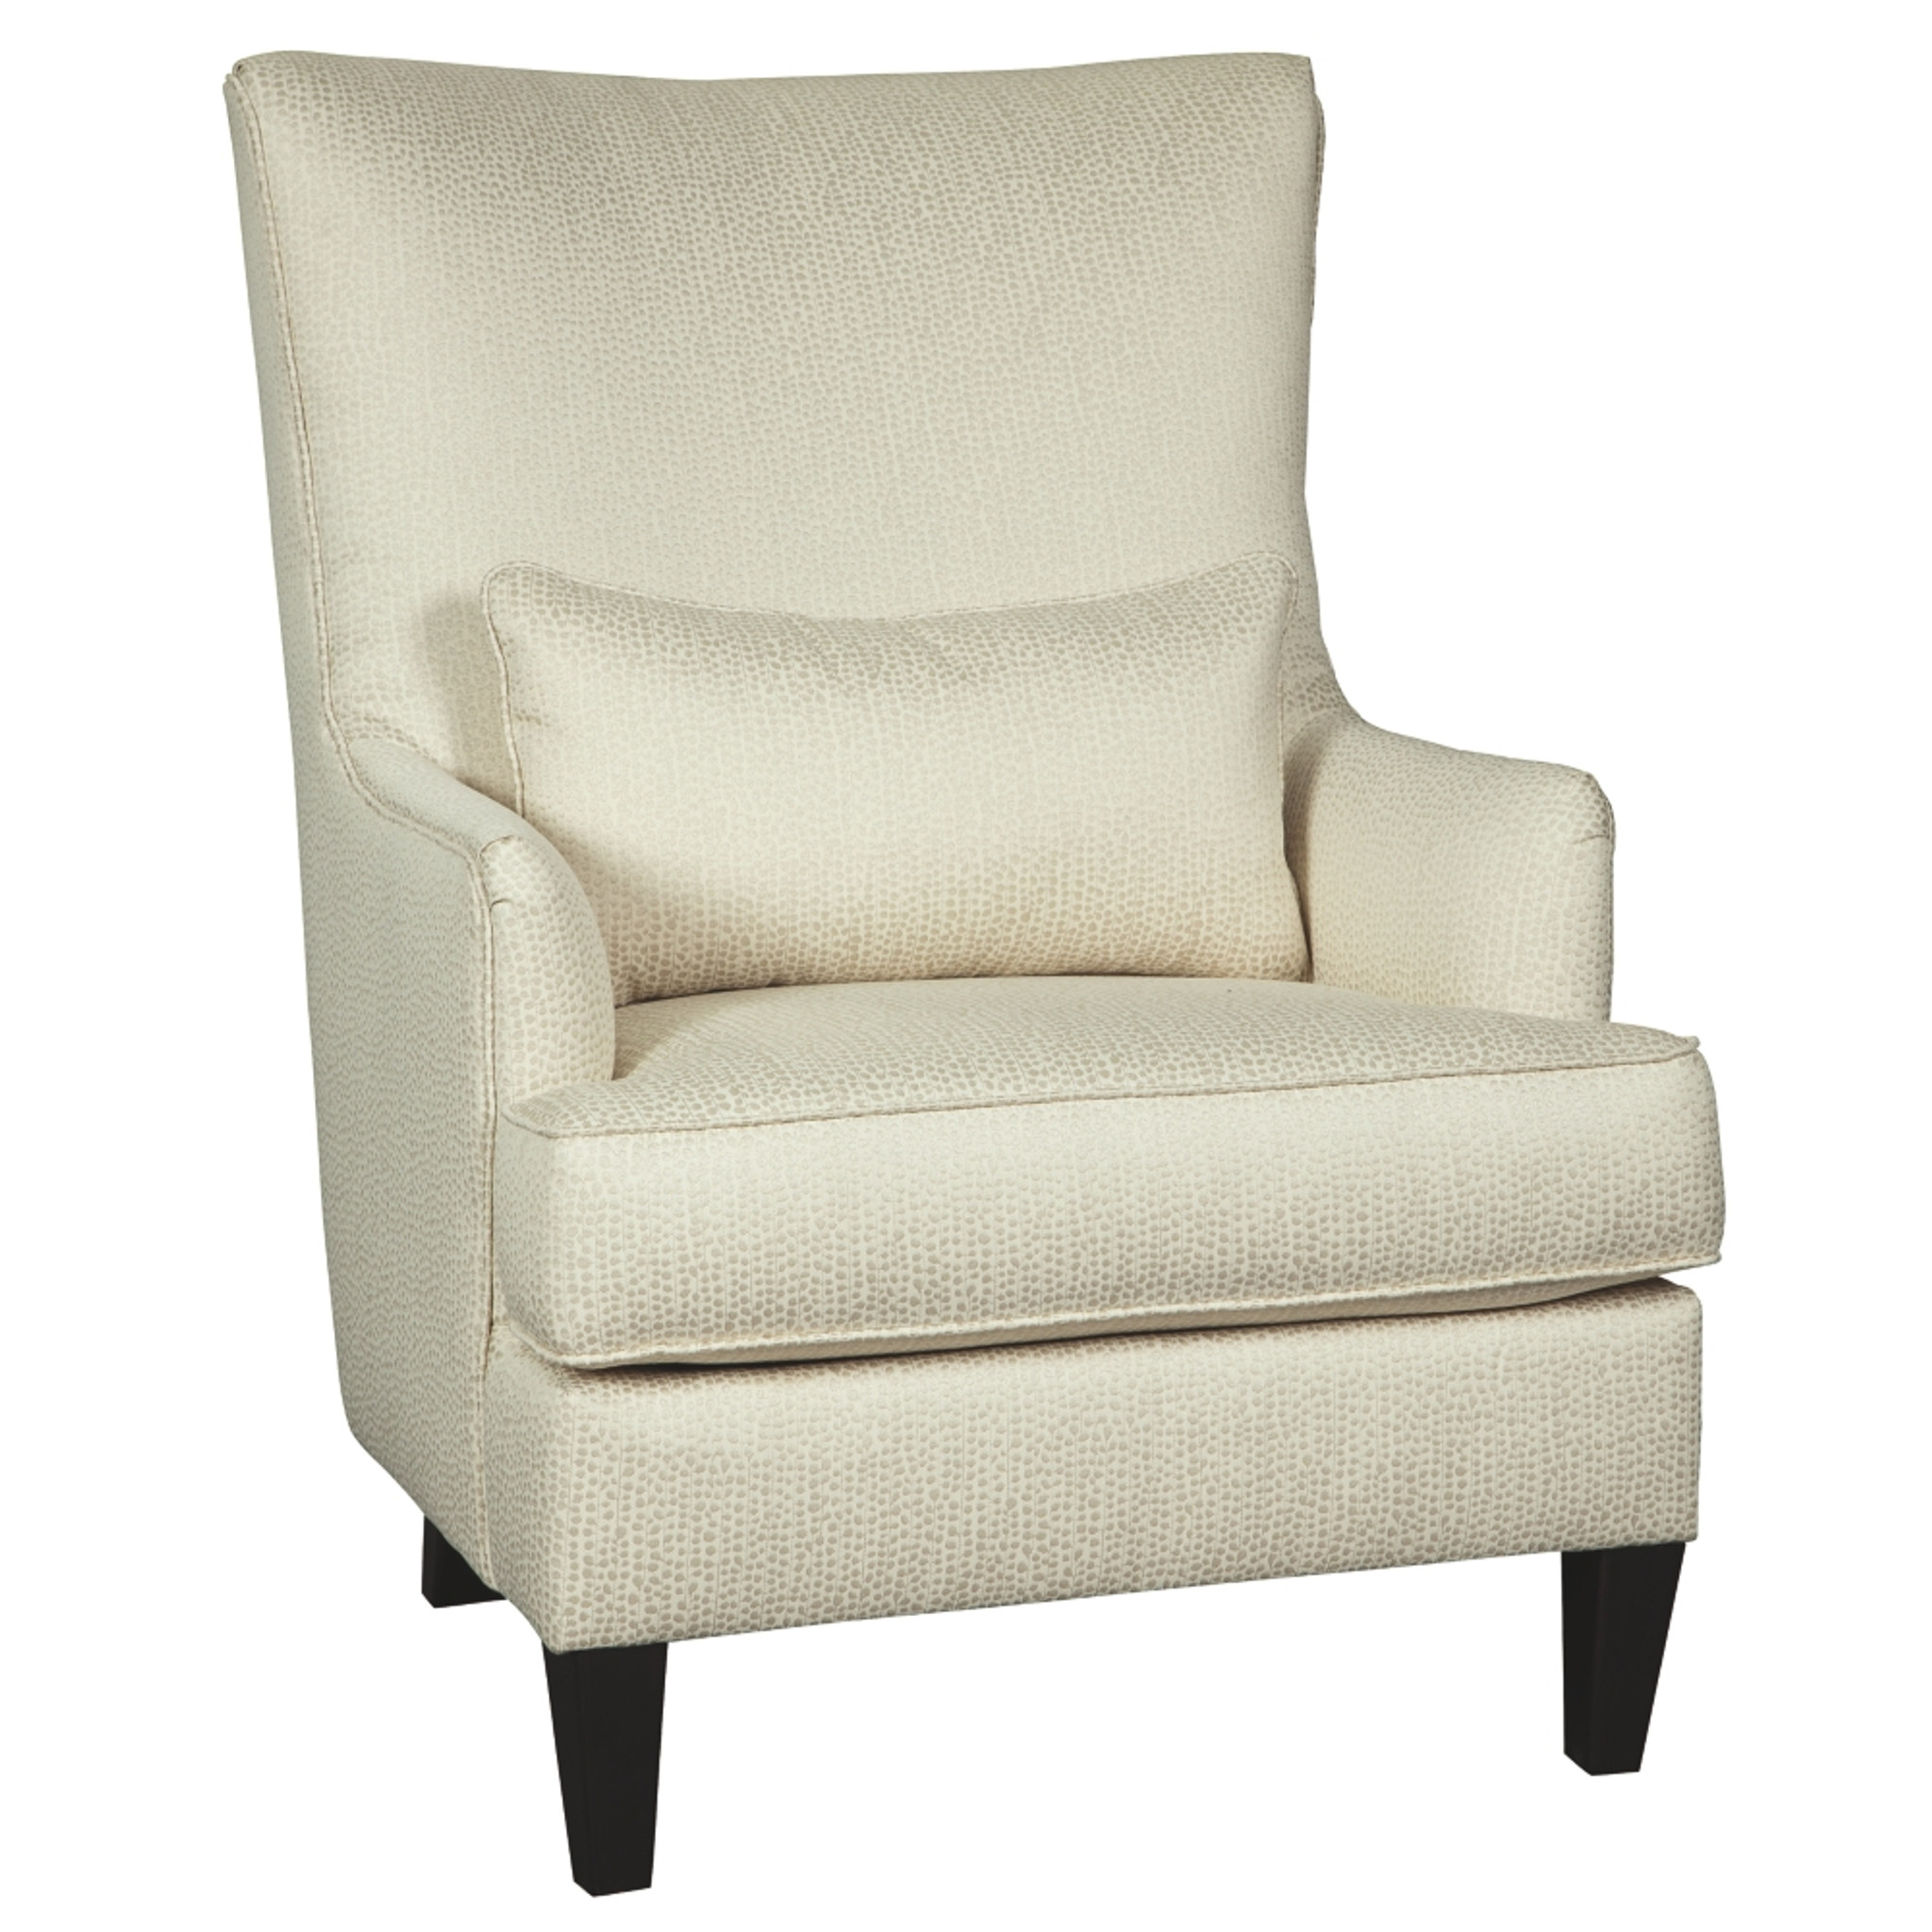 A3000044 Paseo Ivory Accent Chair Collection By Ashley Furniture